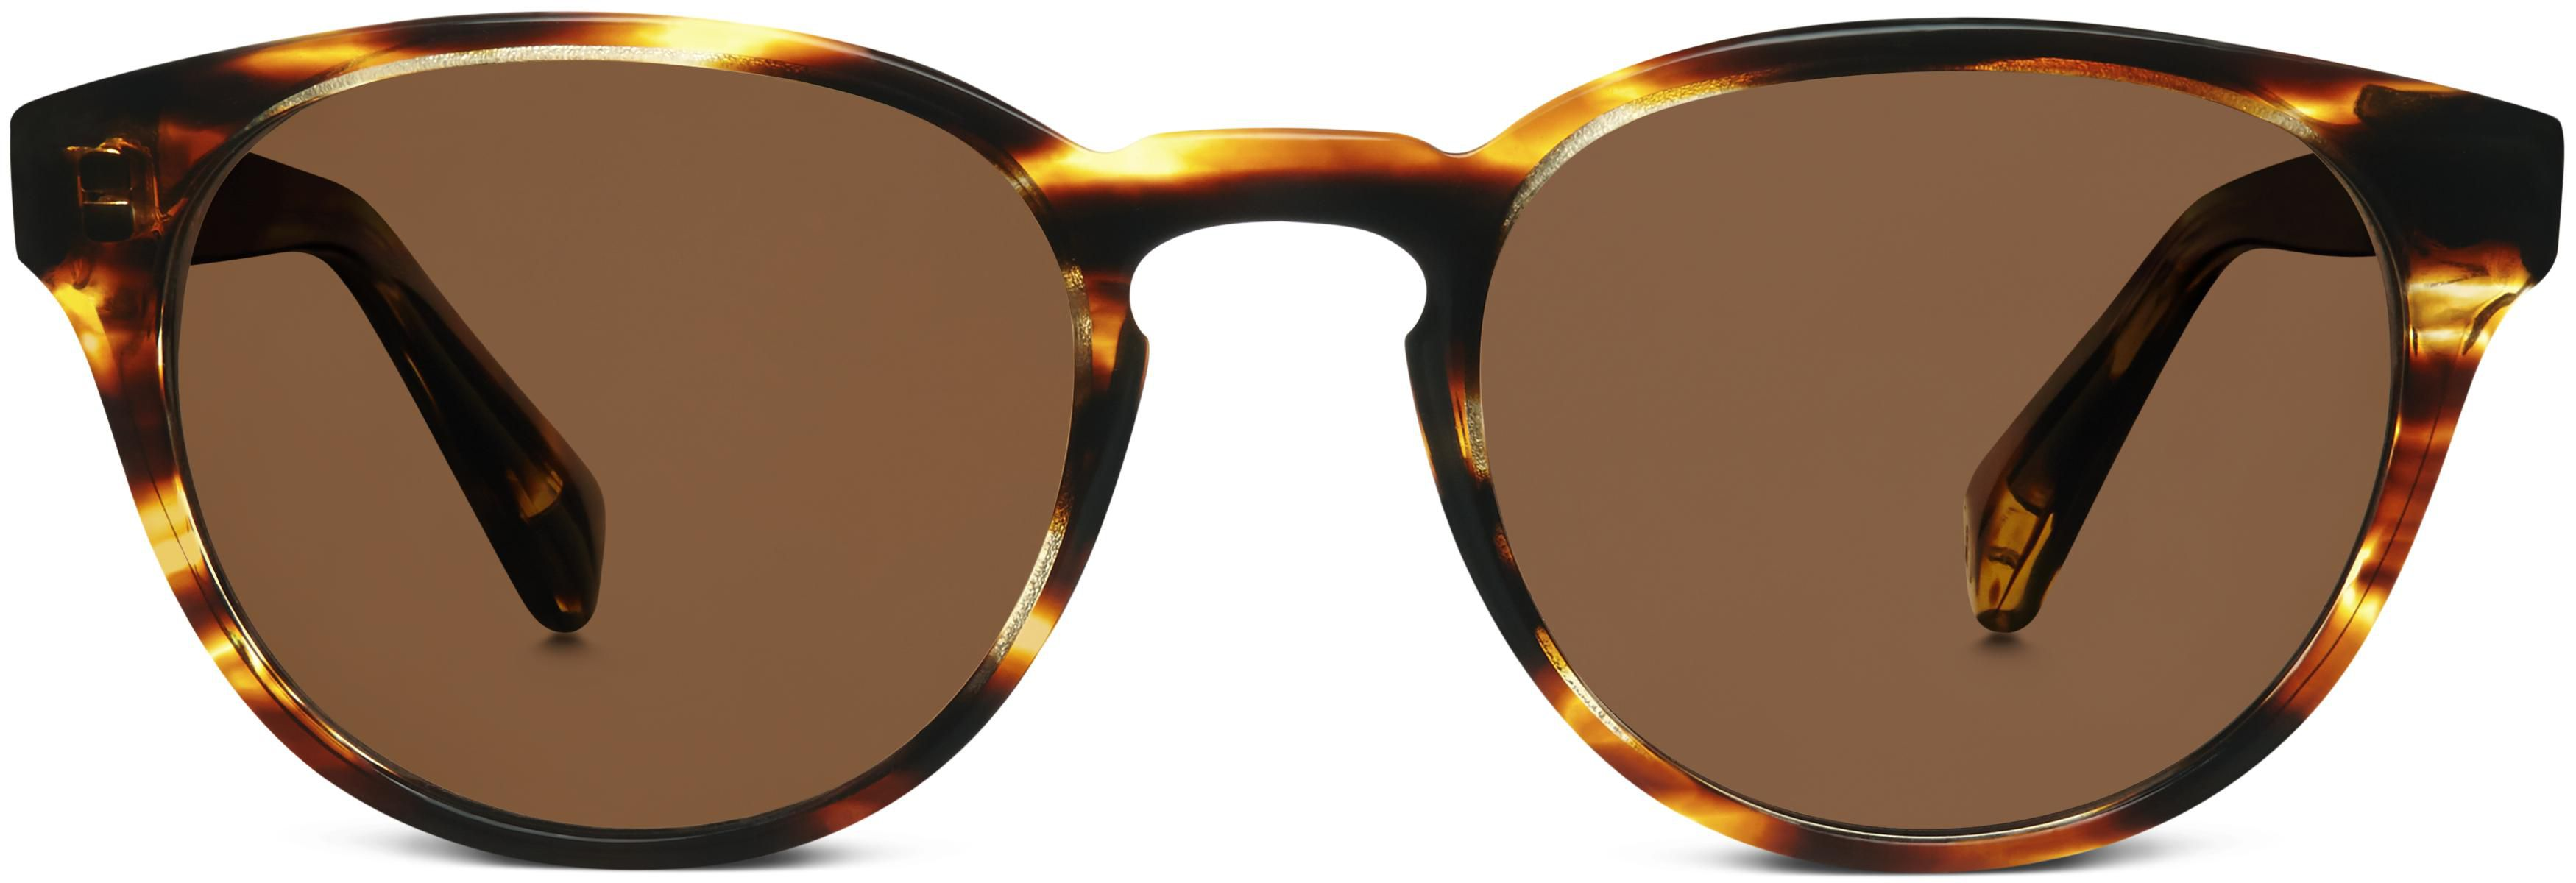 e950b699929ab Percey Sunglasses in Striped Sassafras with Classic Brown lenses for Women